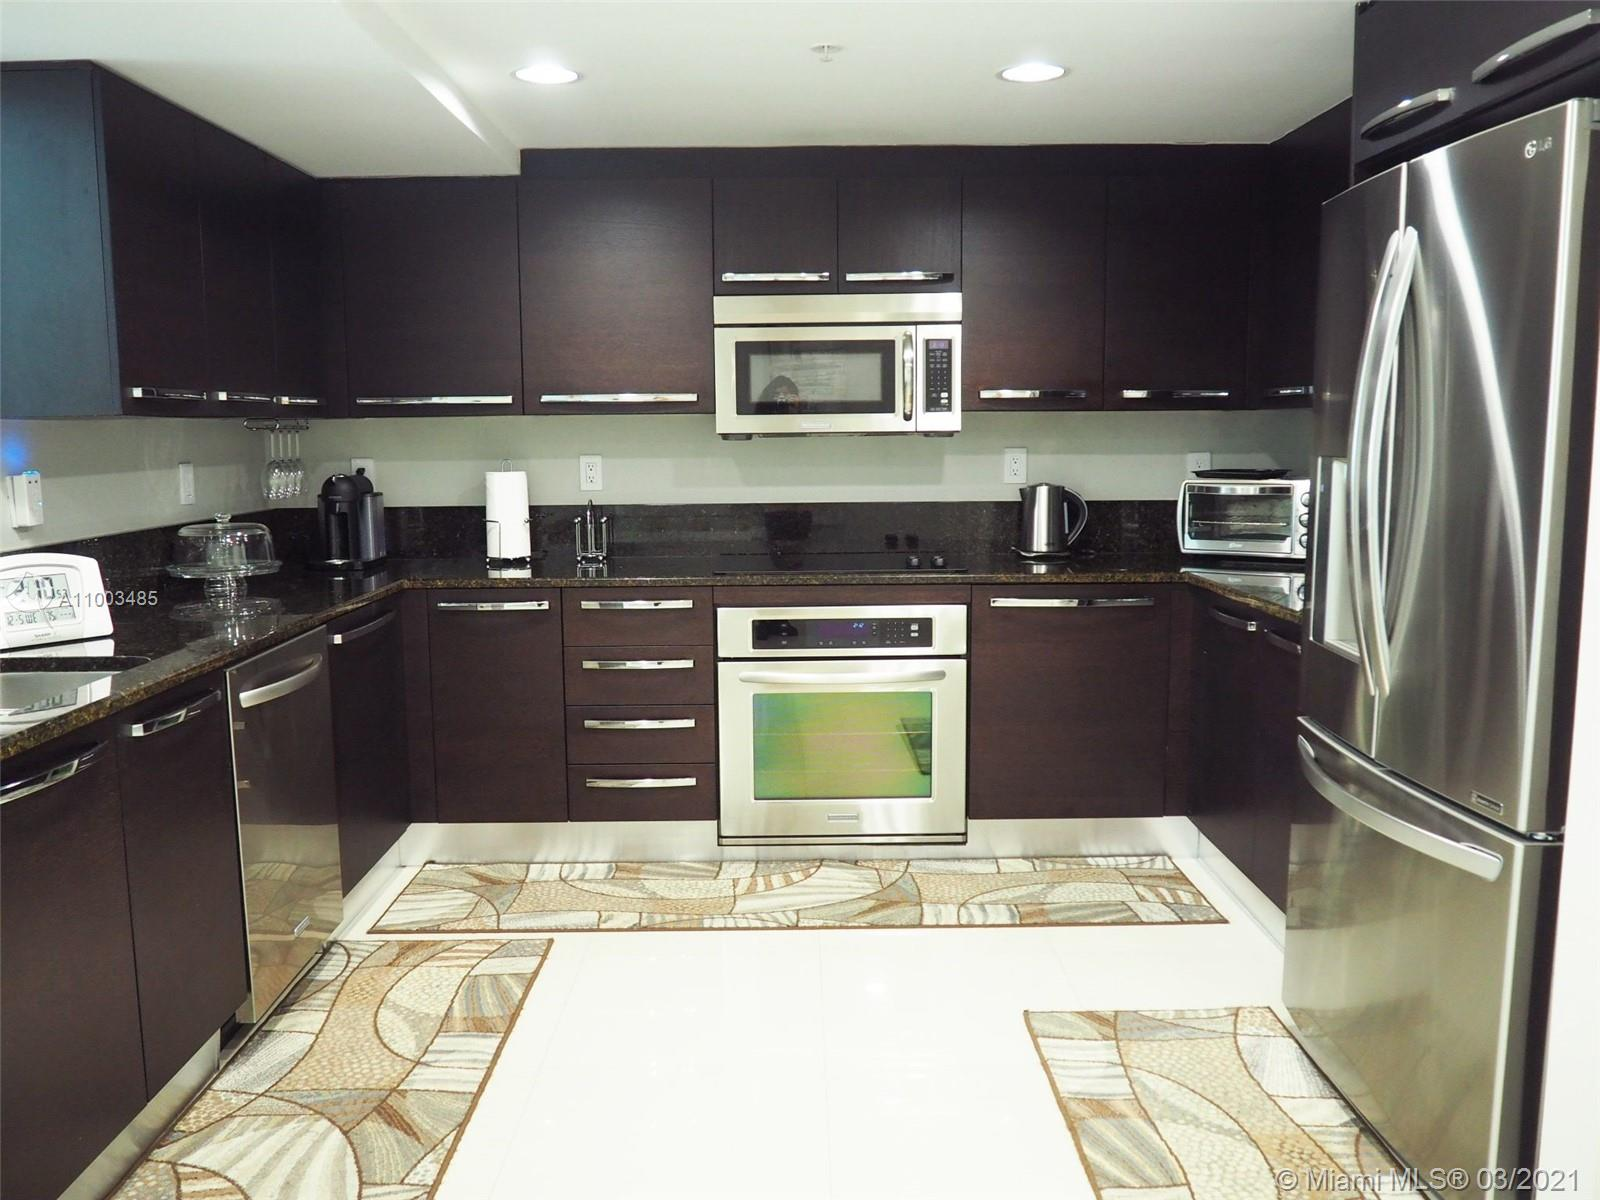 Spectacular 3Bed/2.5Bath 2 story apartment  in a boutique building  at Aventura. Ample spaces,modern kitchen with stainless appliances, 1 bed and full bath in the 1st floor, Big Terrace, 3 PARKING SPACES,maintenance includes Water and INTERNET